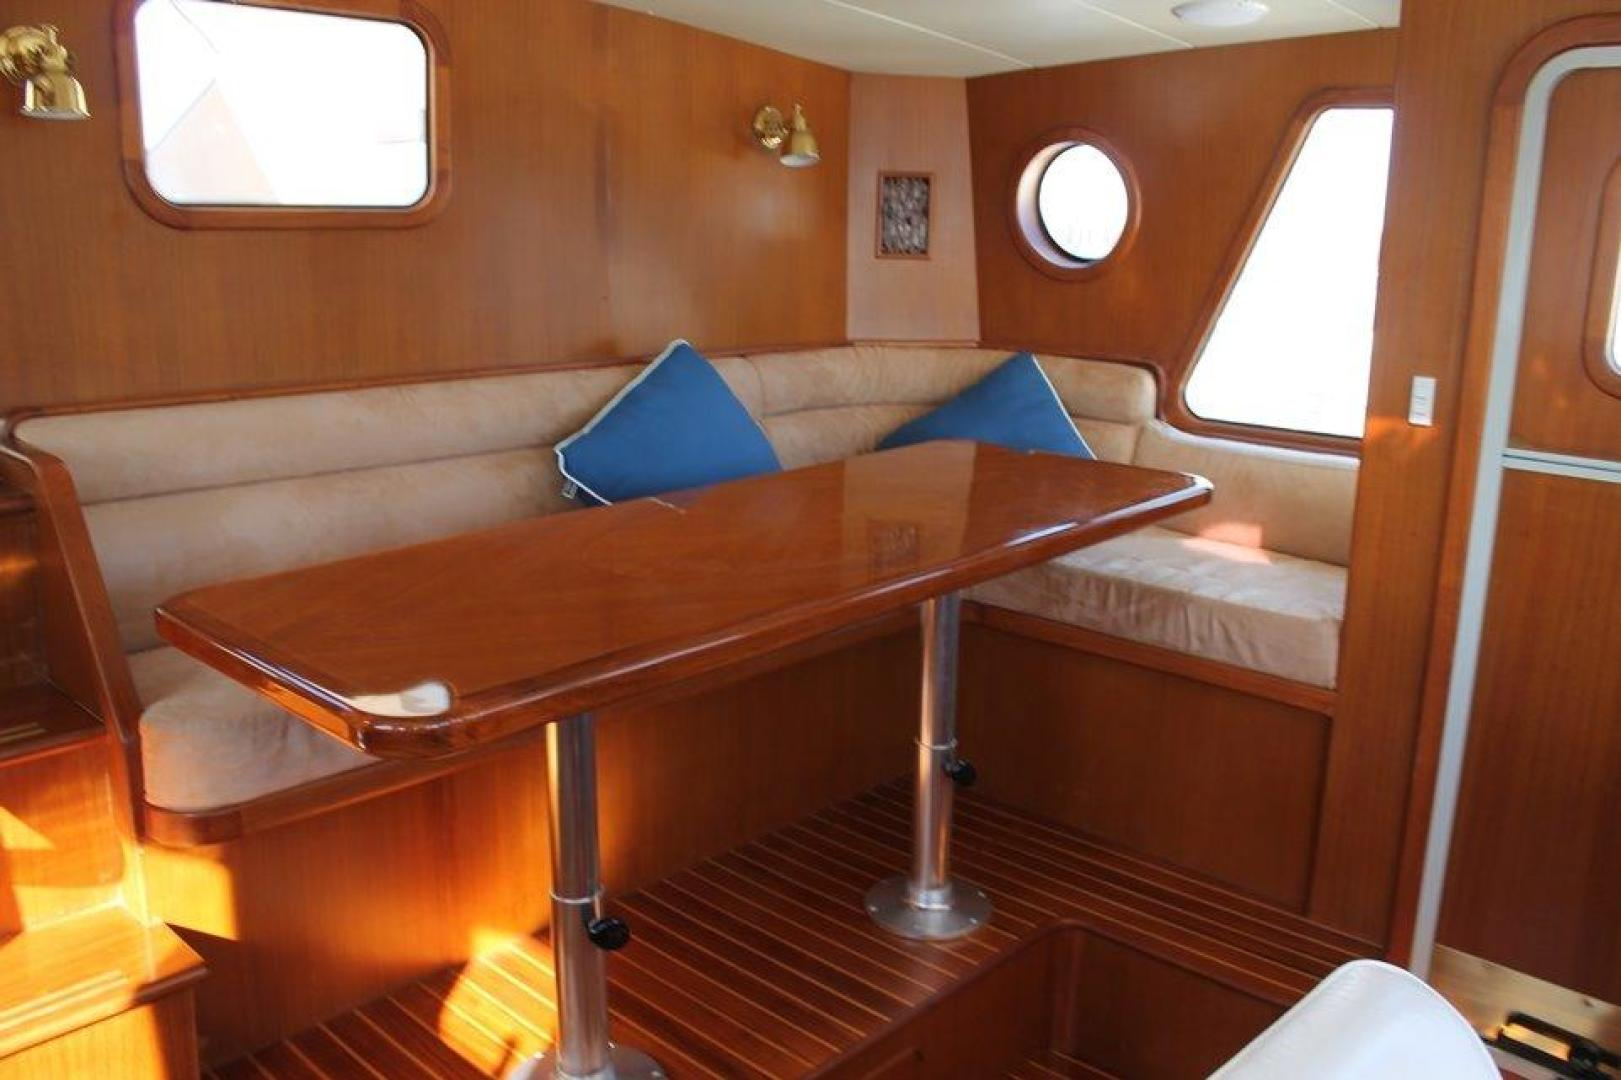 Integrity-496 Trawler 2007-Pier Pressure V St. Johns-Newfoundland And Labrador-Canada-Pilothouse Seating-920710 | Thumbnail